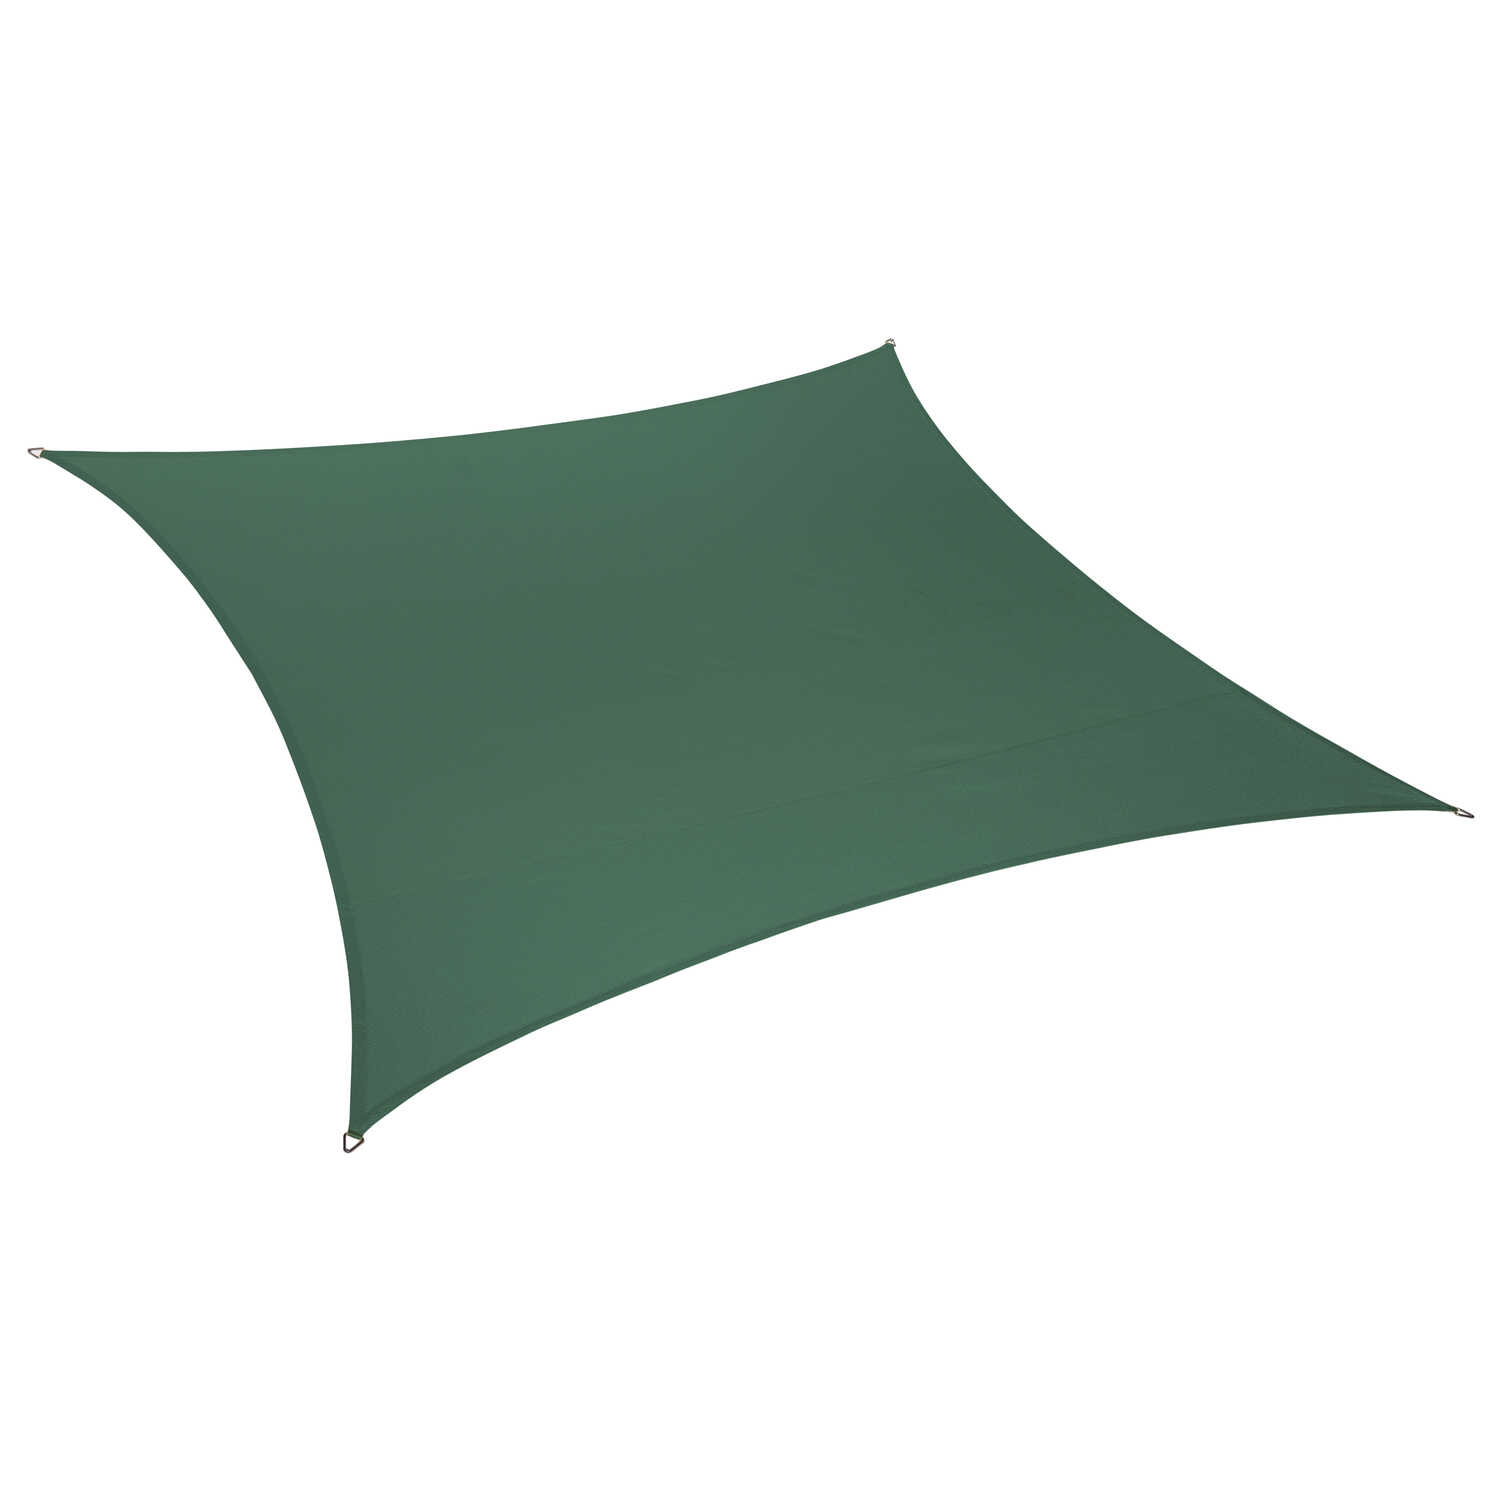 Coolaroo  Polyethylene  Square Shade Sail Canopy  12 ft. W x 12 ft. L